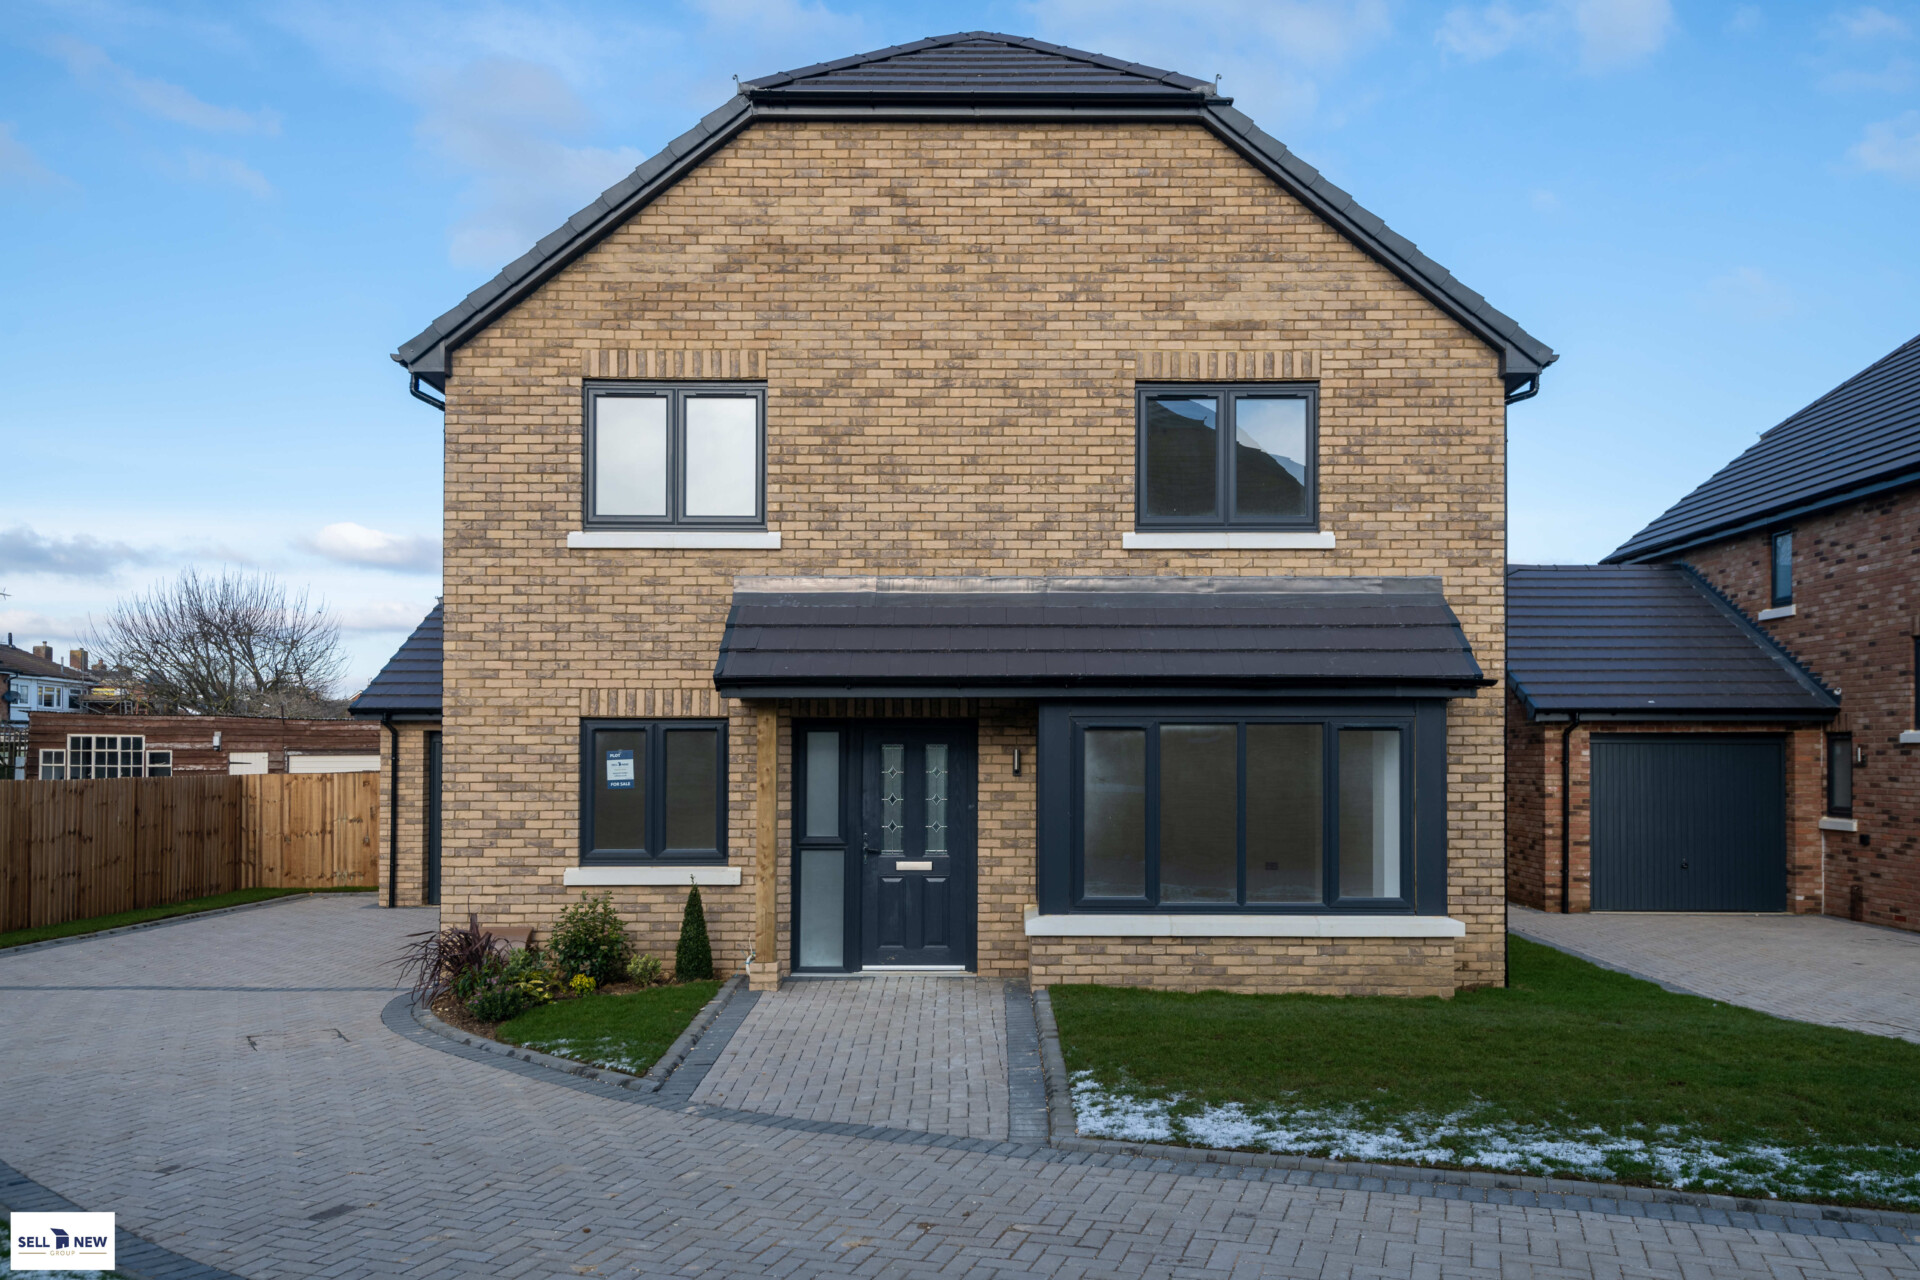 Plot 7 Earls close, Clifton – Four bedroom detached located on corner plot